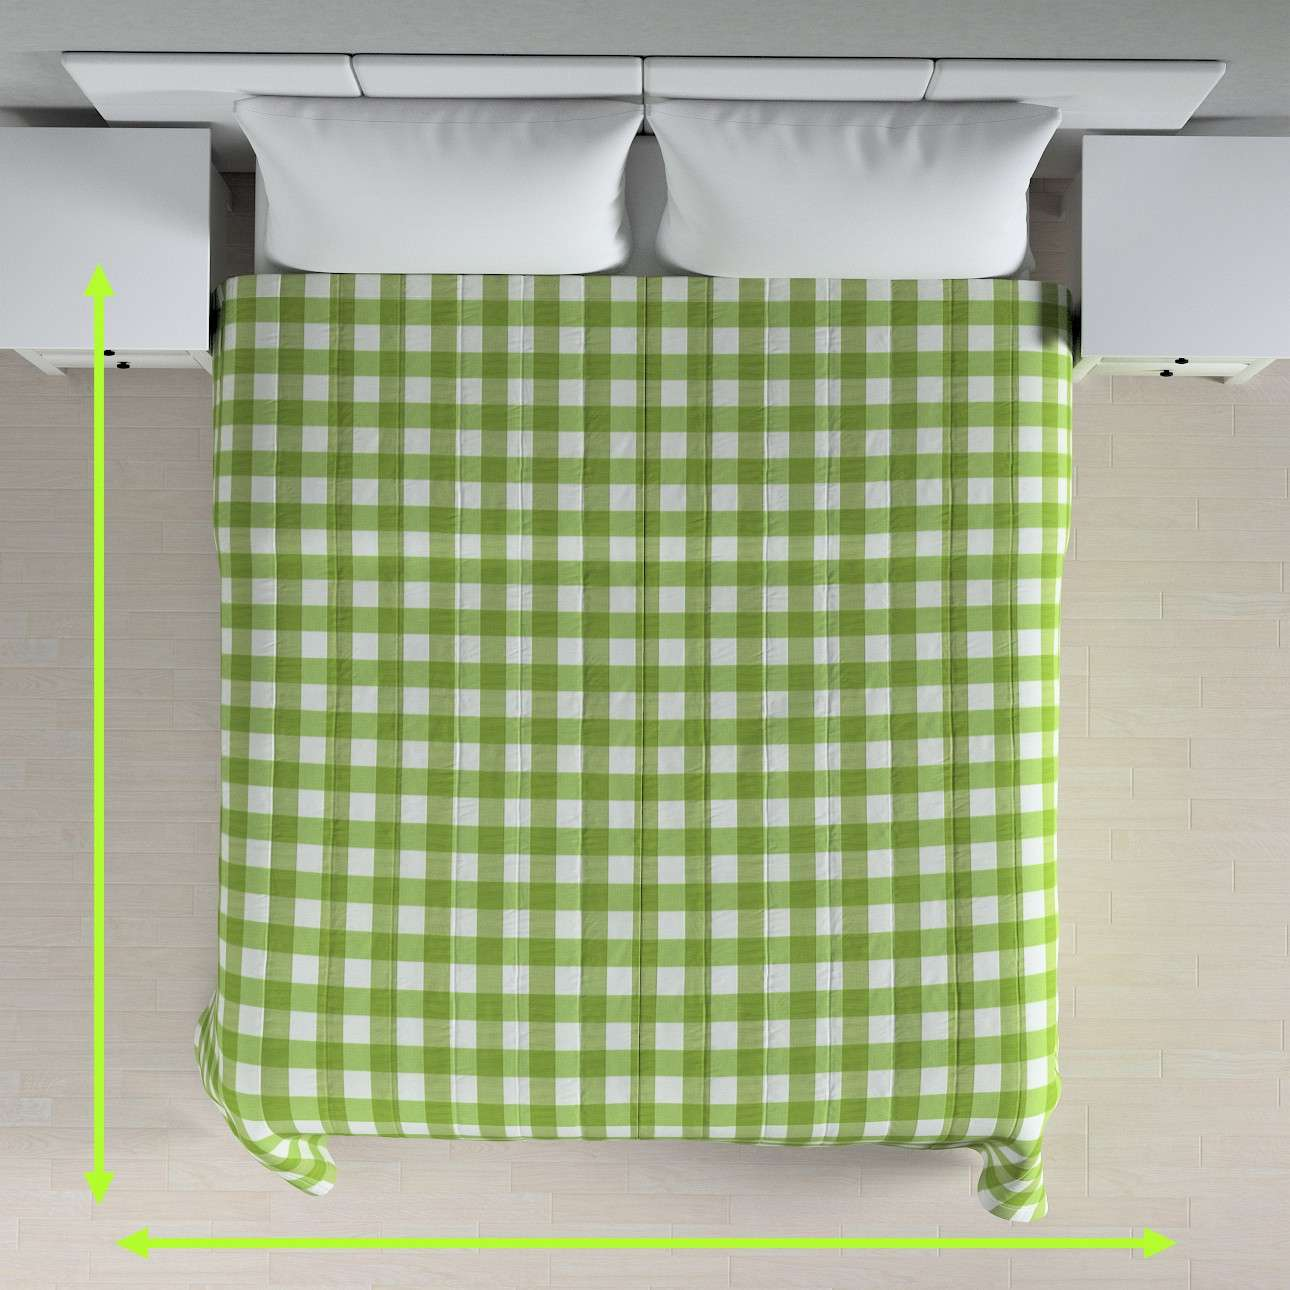 Quilted throw (vertical quilt pattern) in collection Quadro, fabric: 136-36